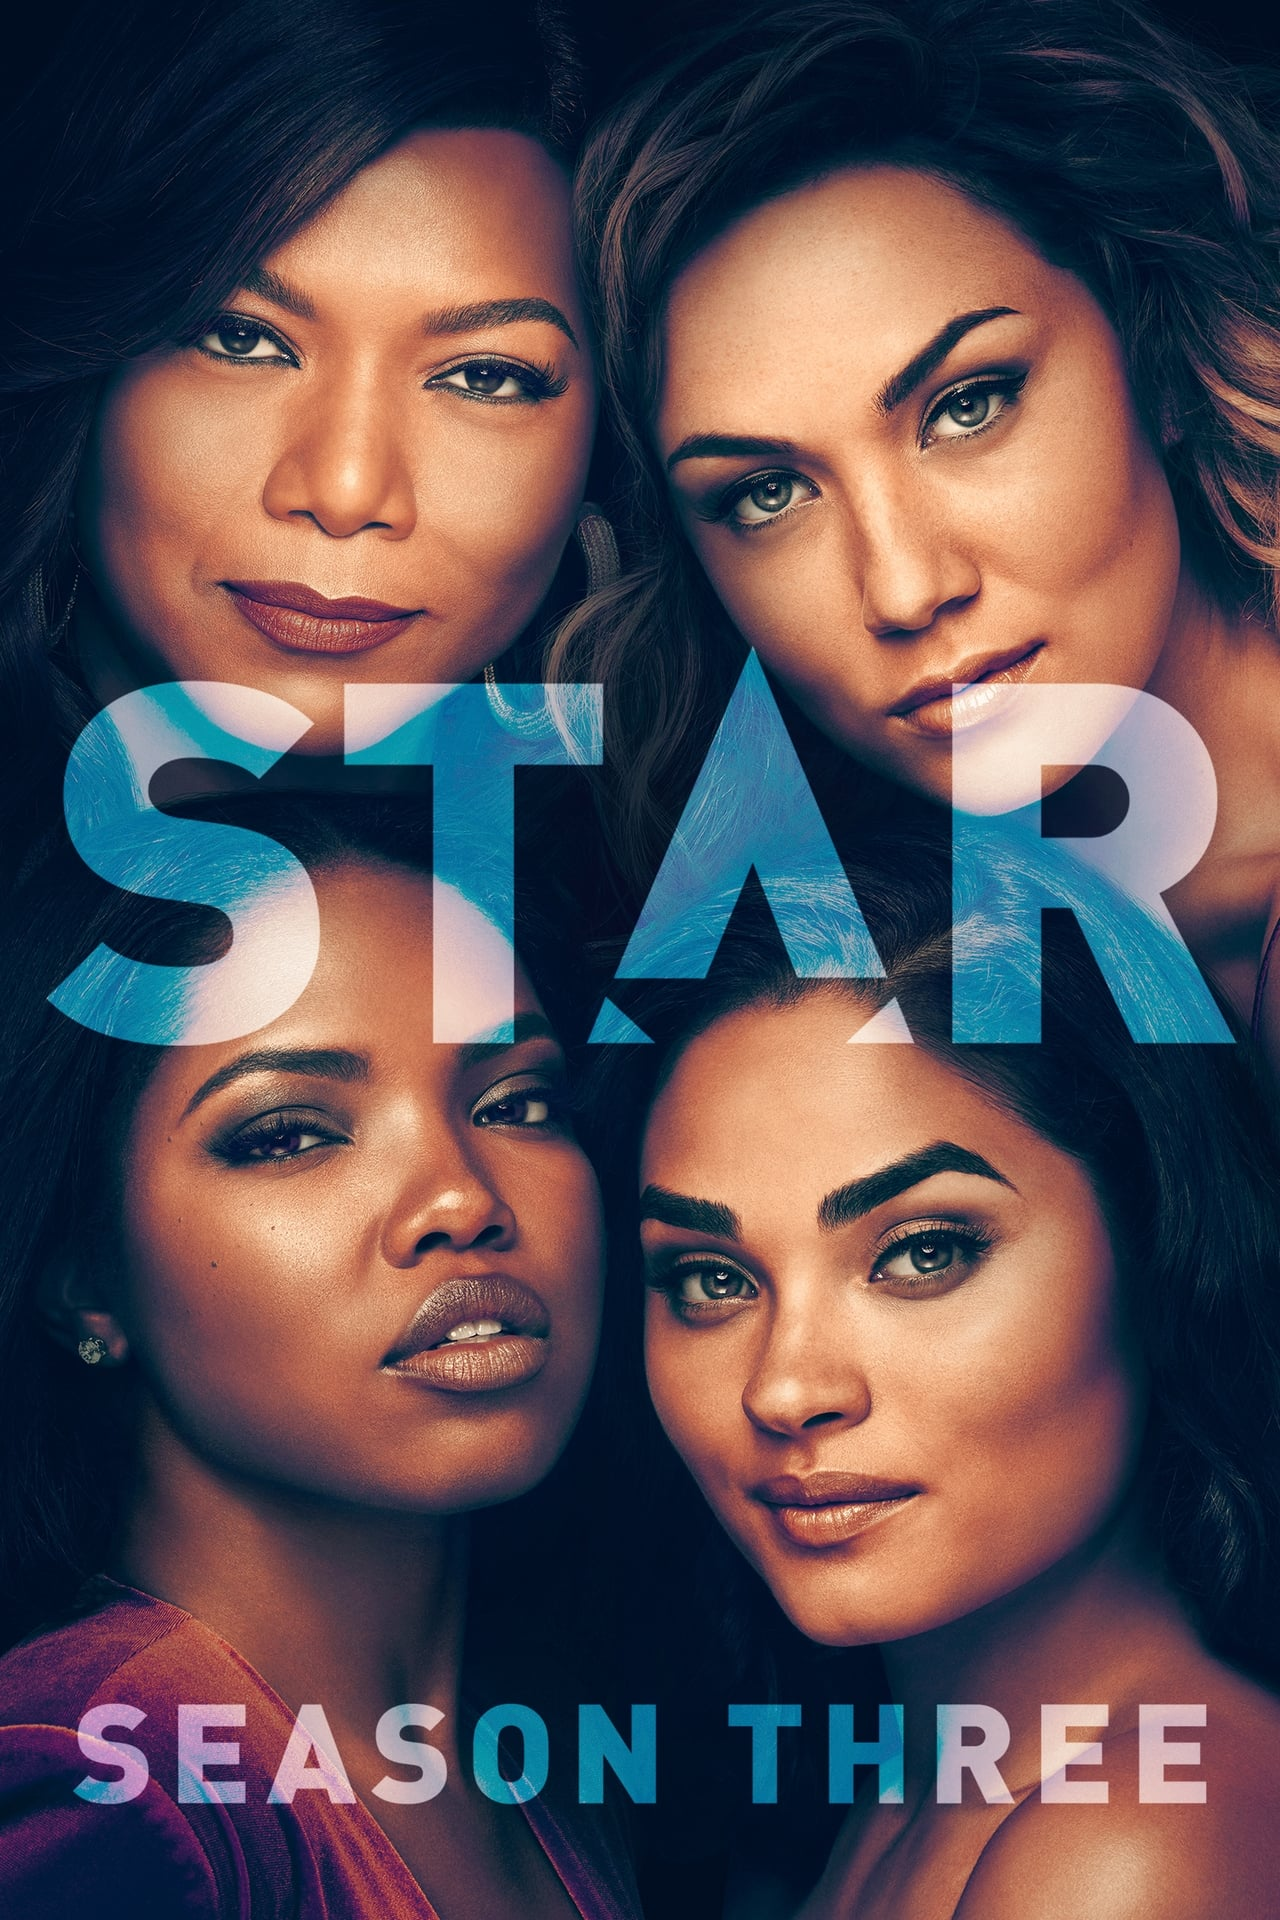 Putlocker Star Season 3 (2018)